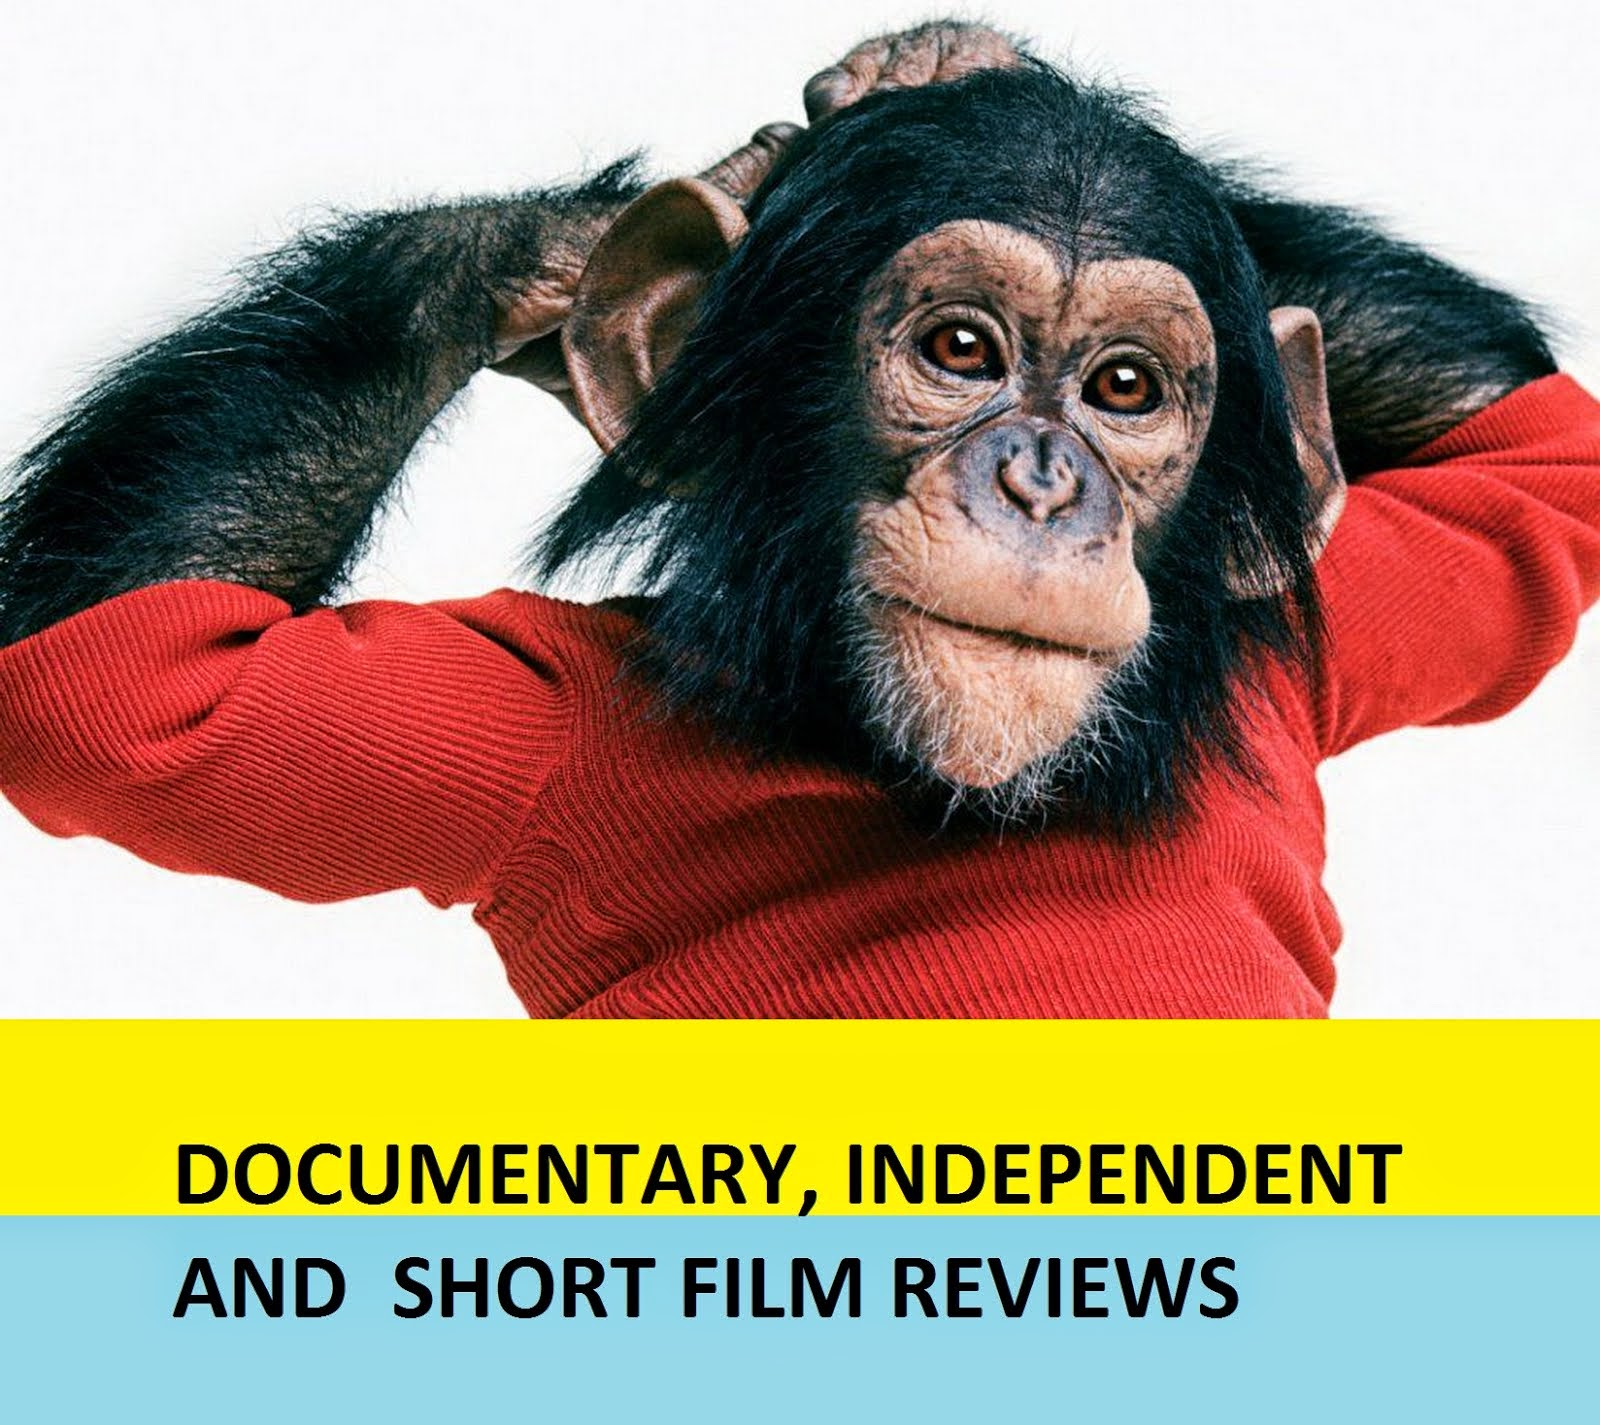 Documentary, Independent and Short Film Reviews